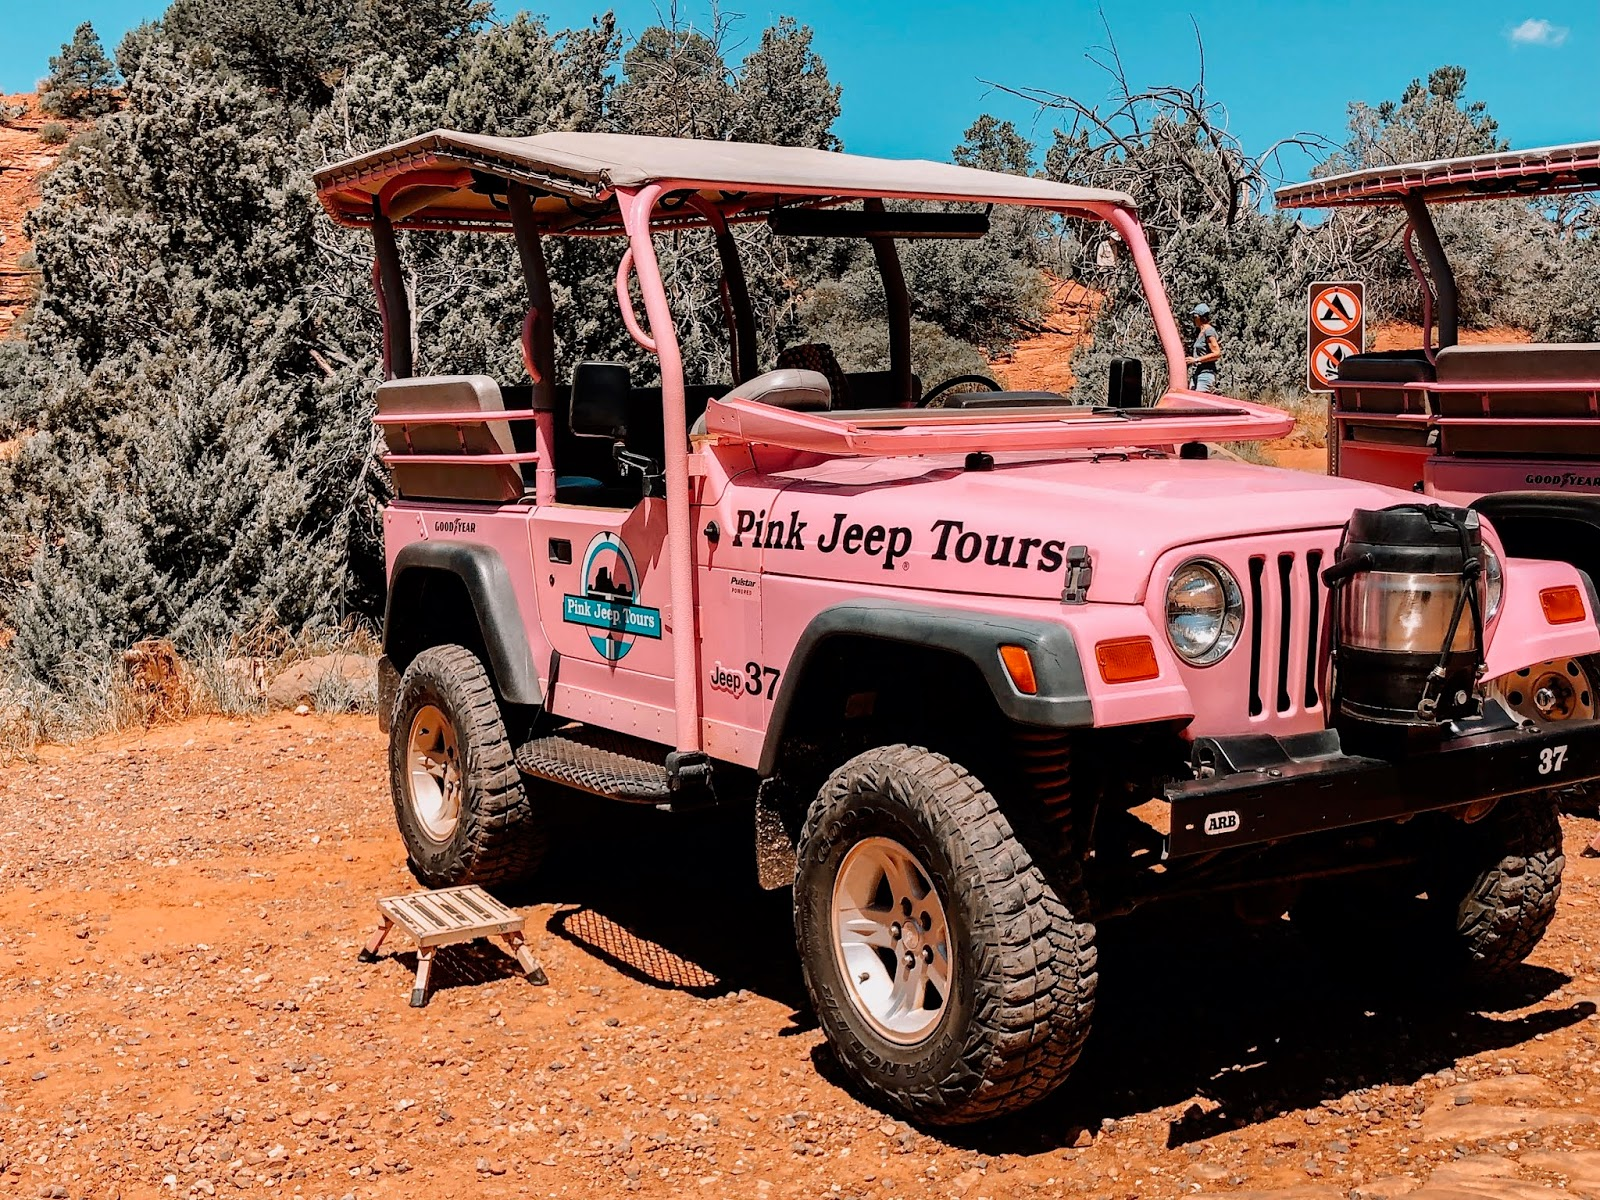 Pink Jeep from the Pink Jeep Tours in Sedona Arizona Things to Do in Arizona Things to do in Sedona